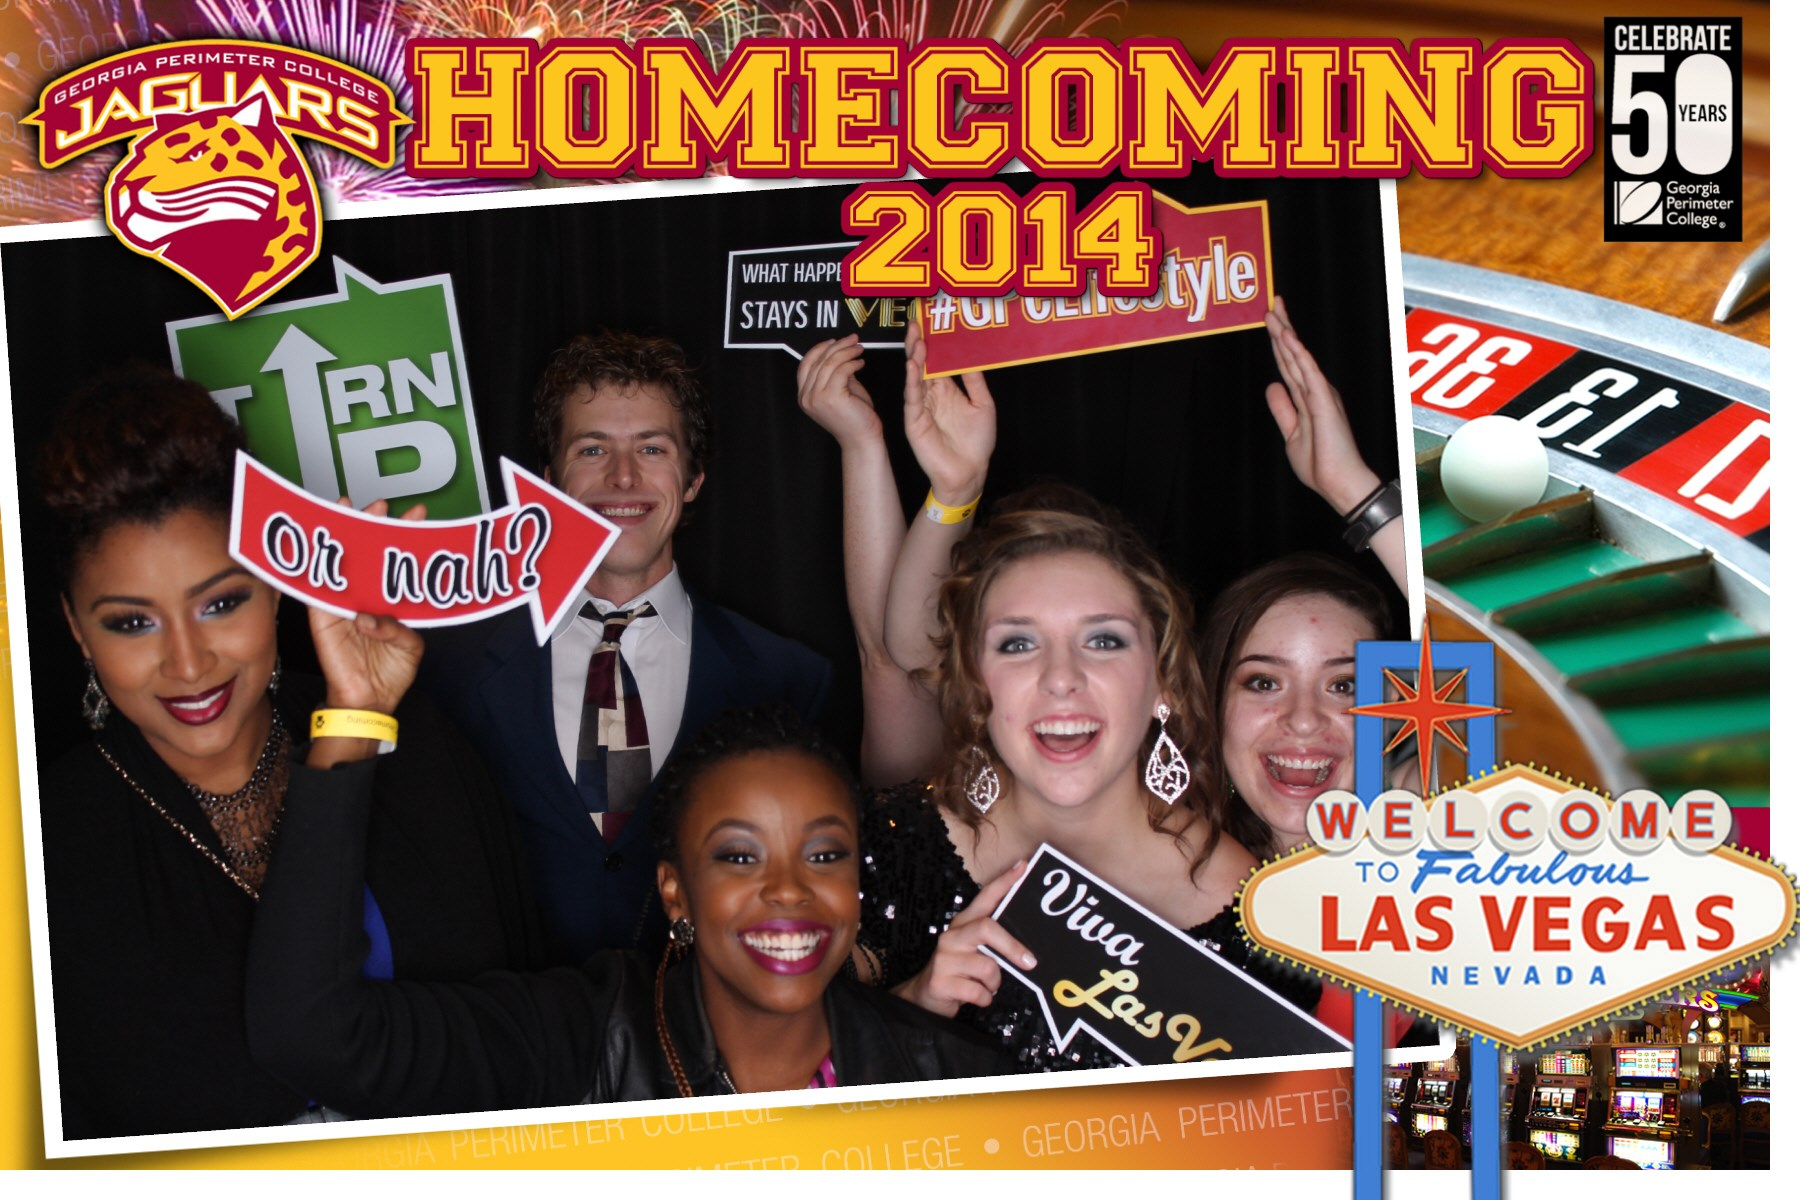 GPC Homecoming 2014